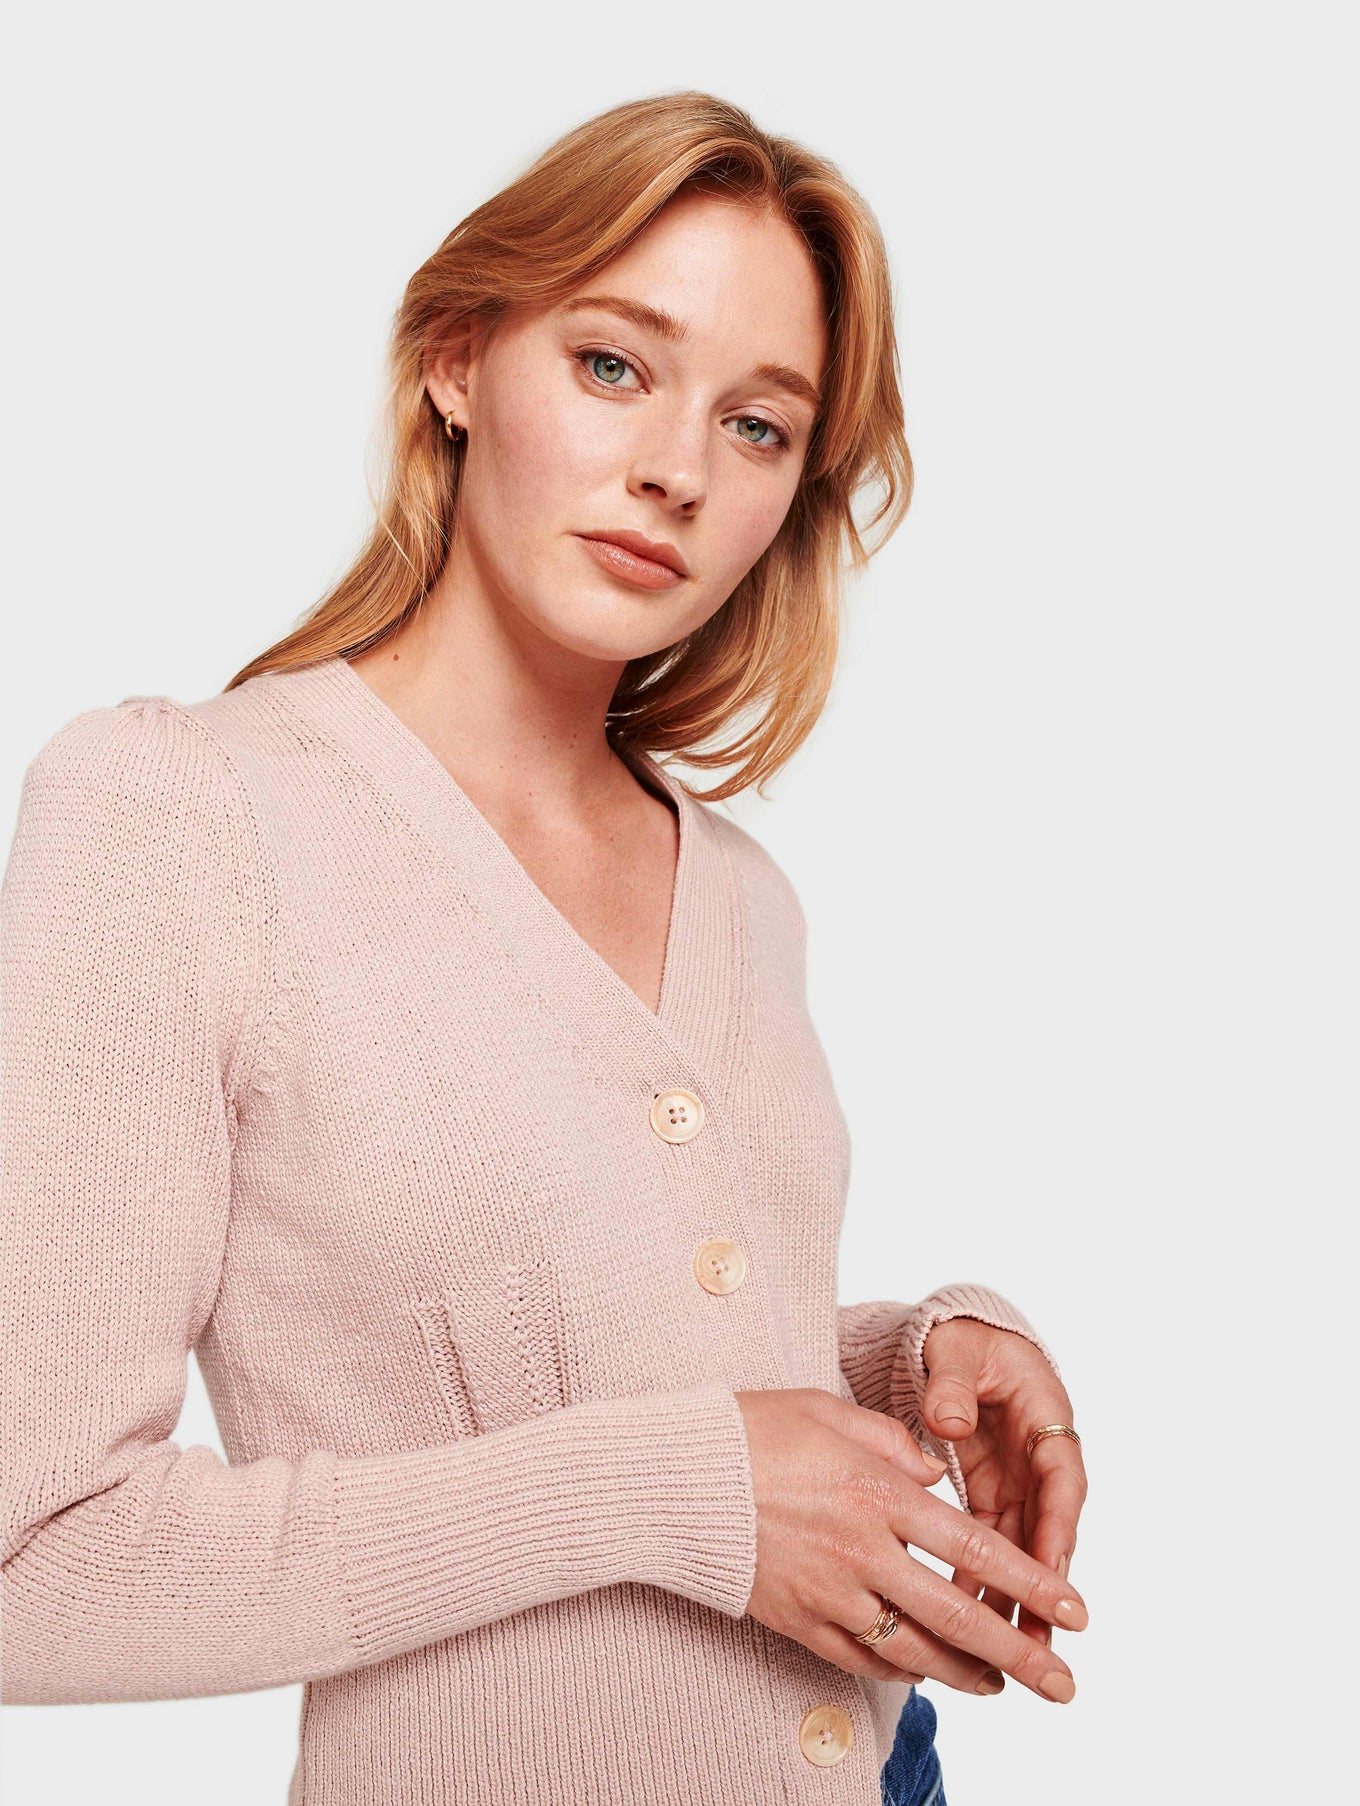 Cotton Puff Shoulder Cardigan - Pink Topaz - Image 1